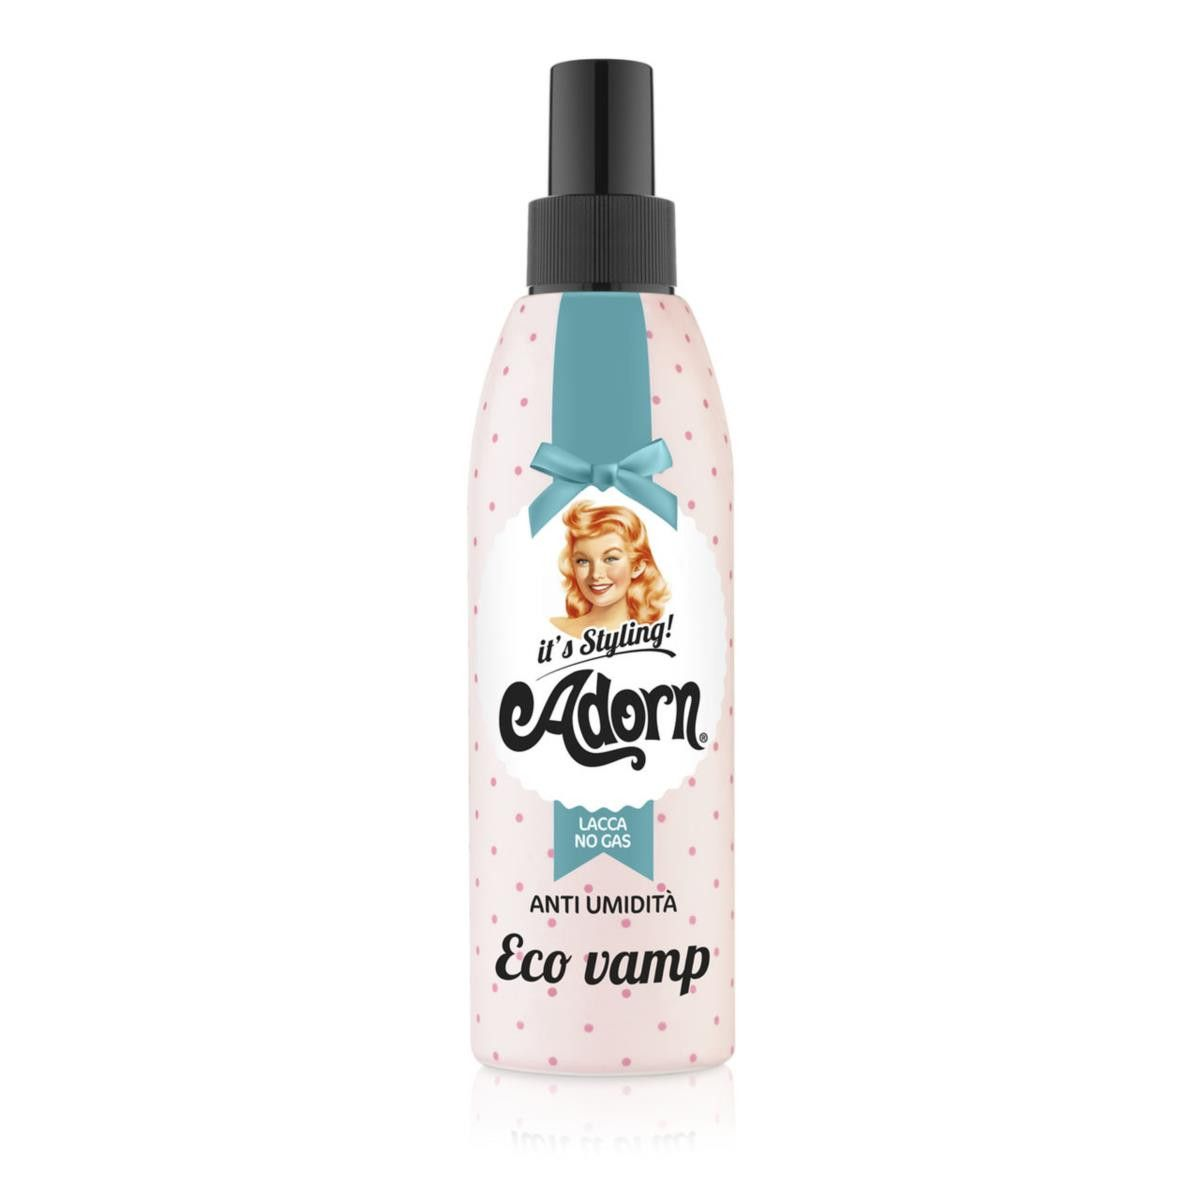 Adorn Lacca No Gas 200 ml